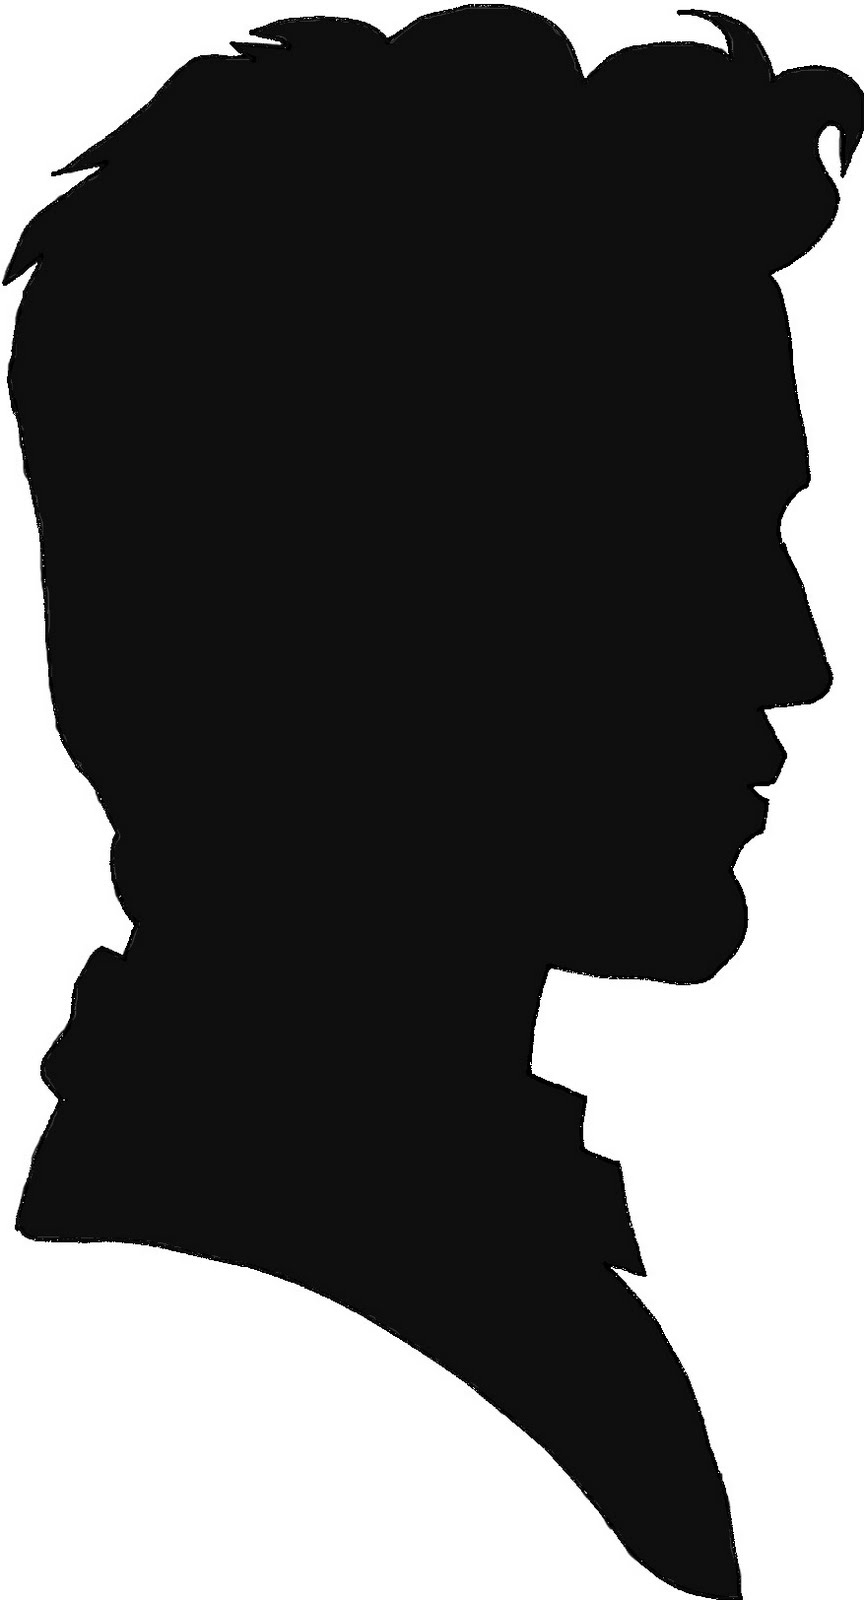 female side profile silhouette at getdrawings com free for